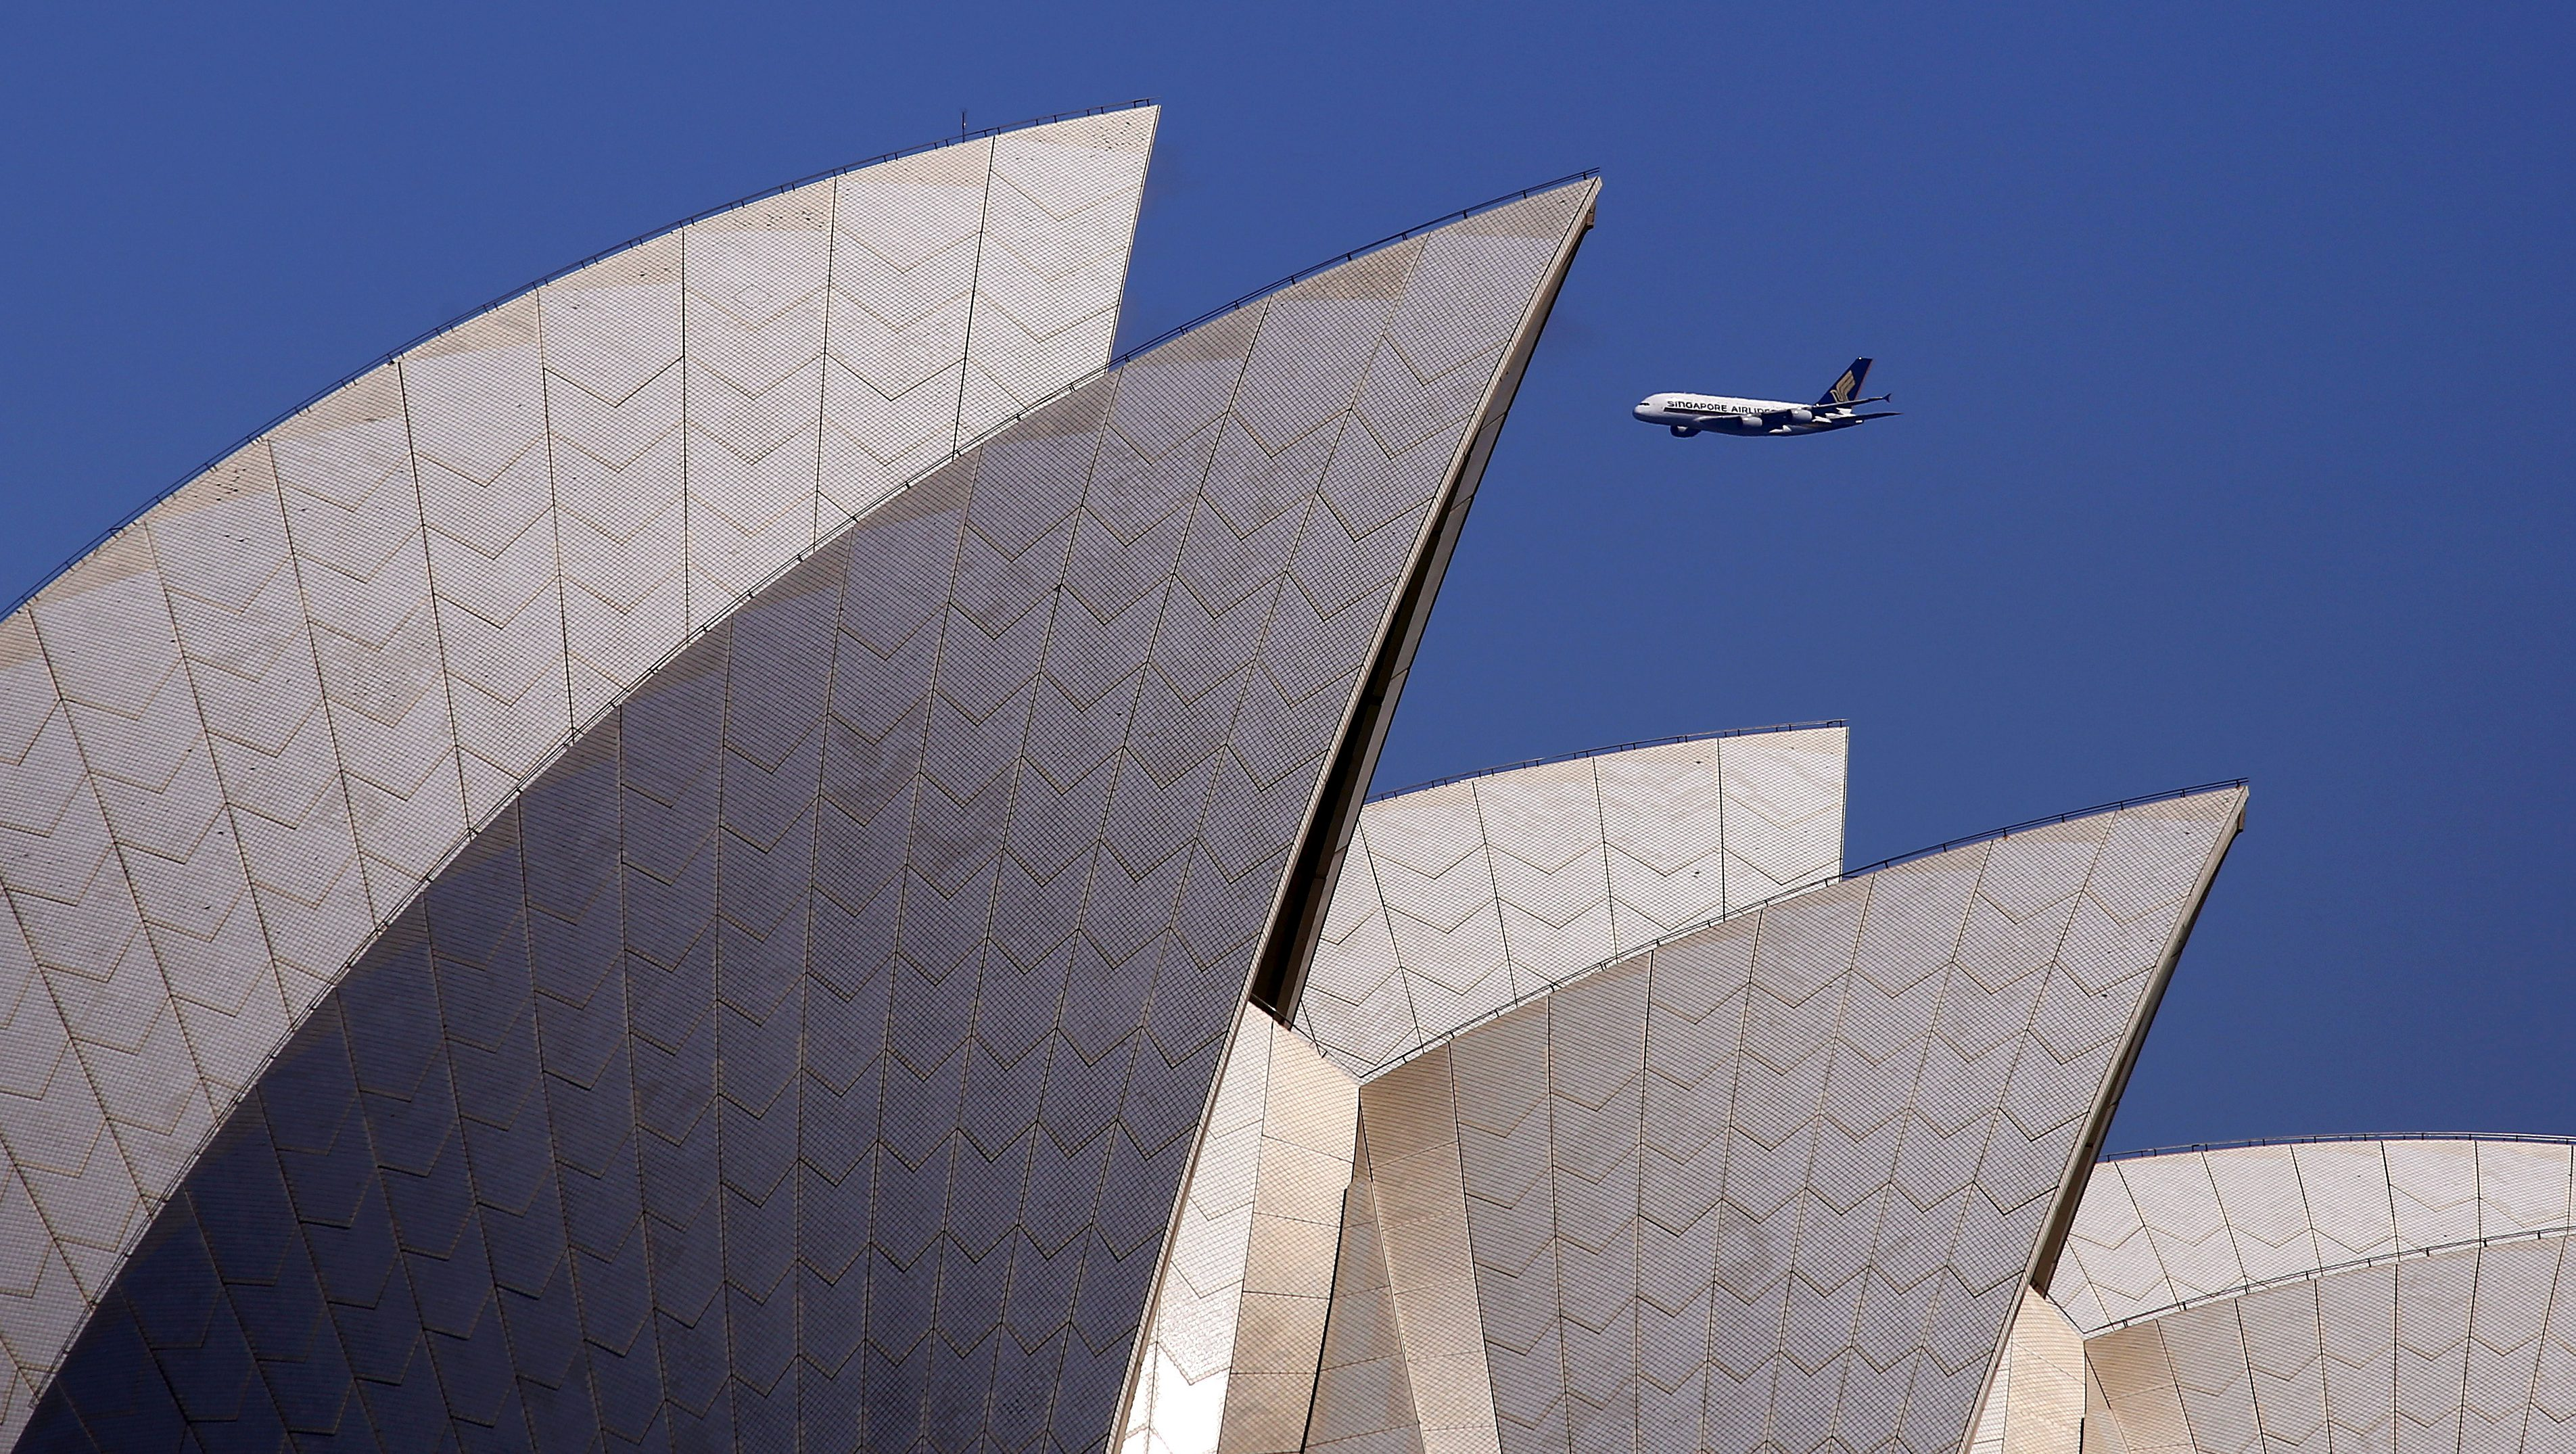 A Singapore Airlines Airbus A380 can be seen coming into land behind the Sydney Opera House in Sydney, Australia, September 28, 2015.     REUTERS/David Gray/File Photo - RTSMKGX